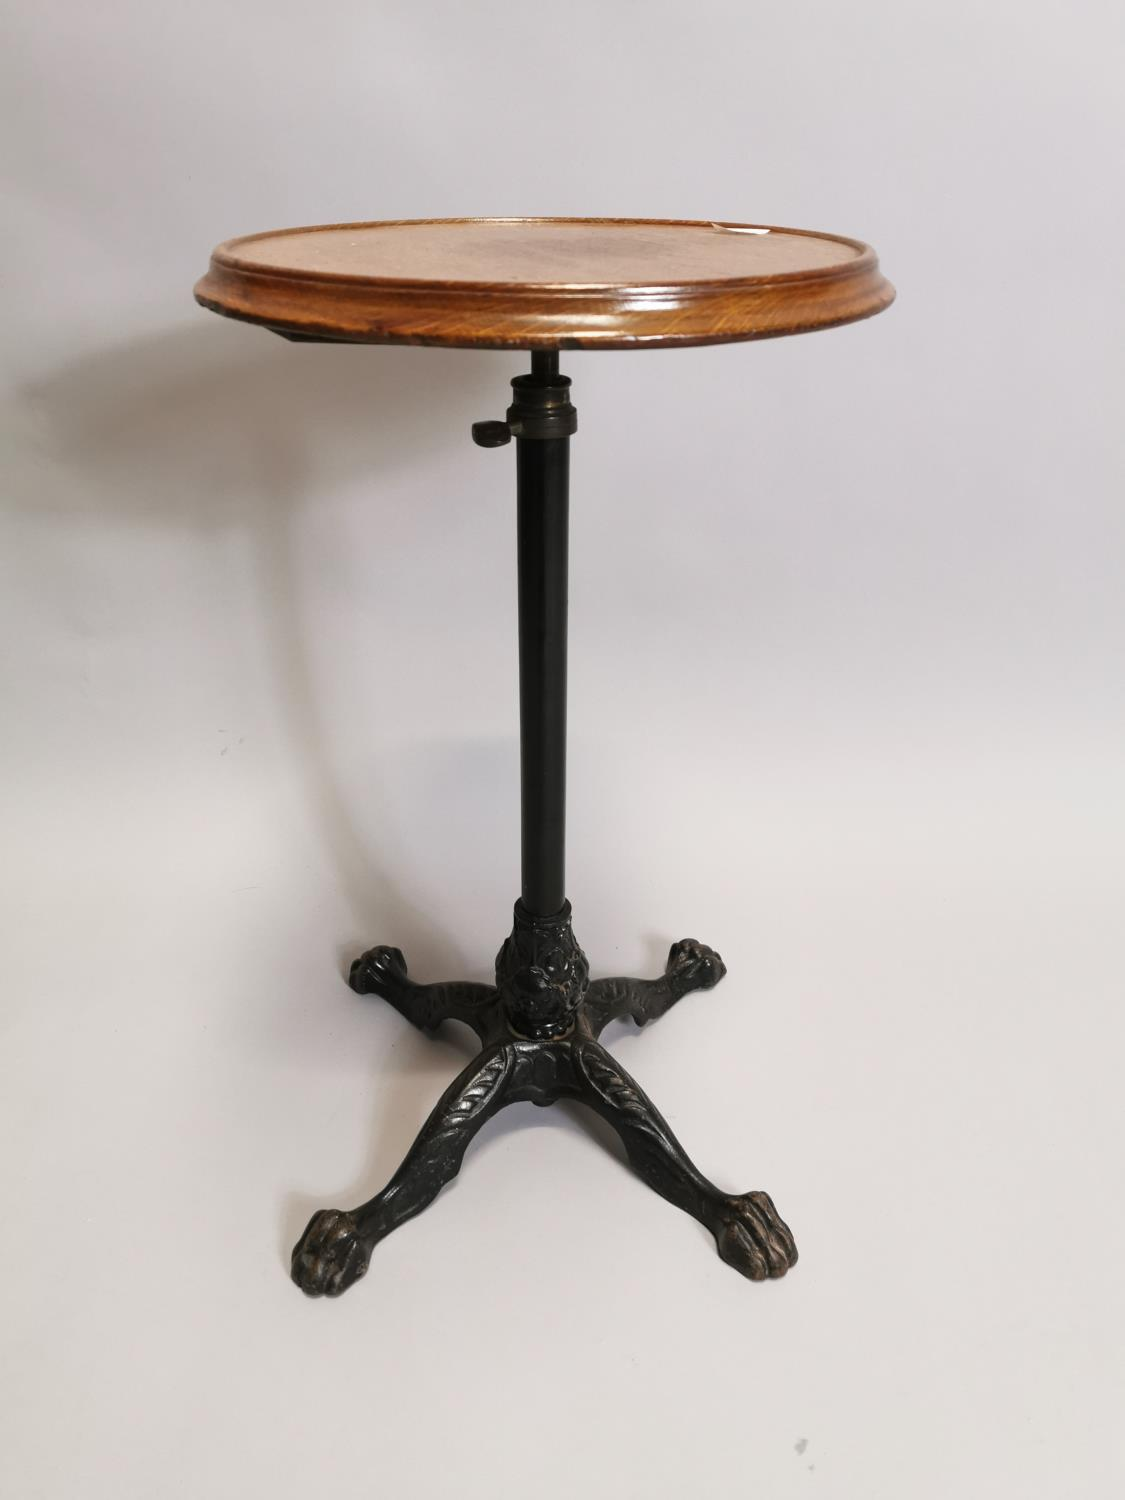 Early 20th. C. wine table